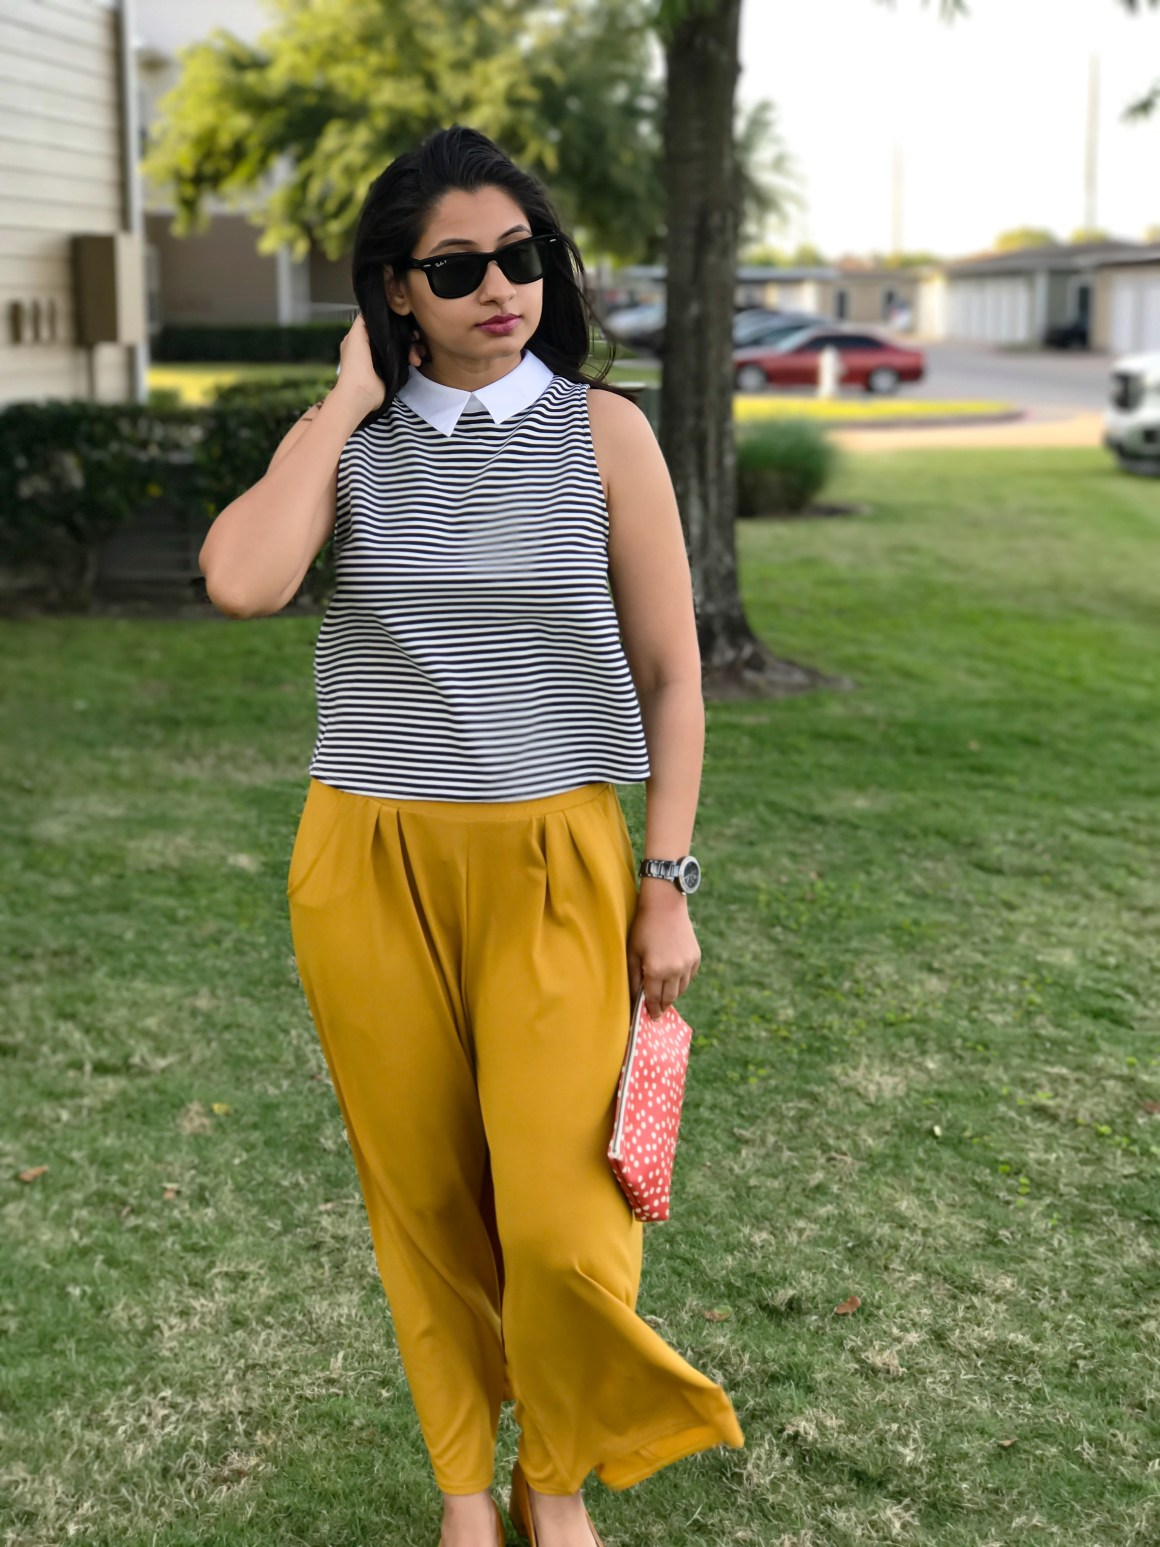 Striped top - Zara, Yellow pants - Zaful